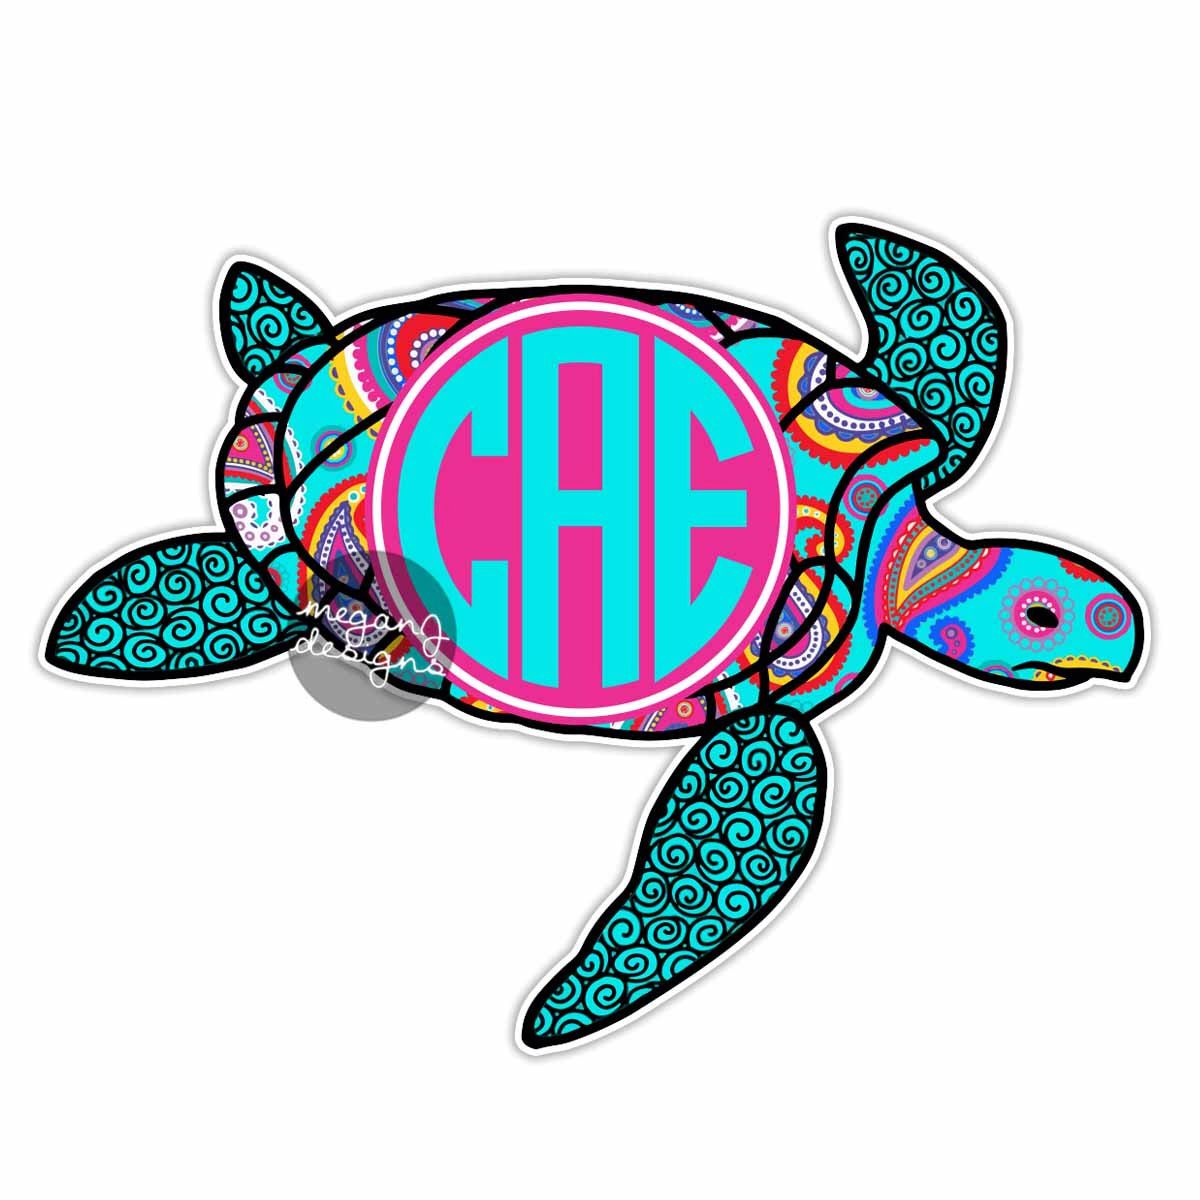 Custom Paisley Sea Turtle Sticker Colorful Design Cute Car Etsy Turtle Wall Decals Cute Car Decals Wall Stickers Geometric [ 1200 x 1200 Pixel ]